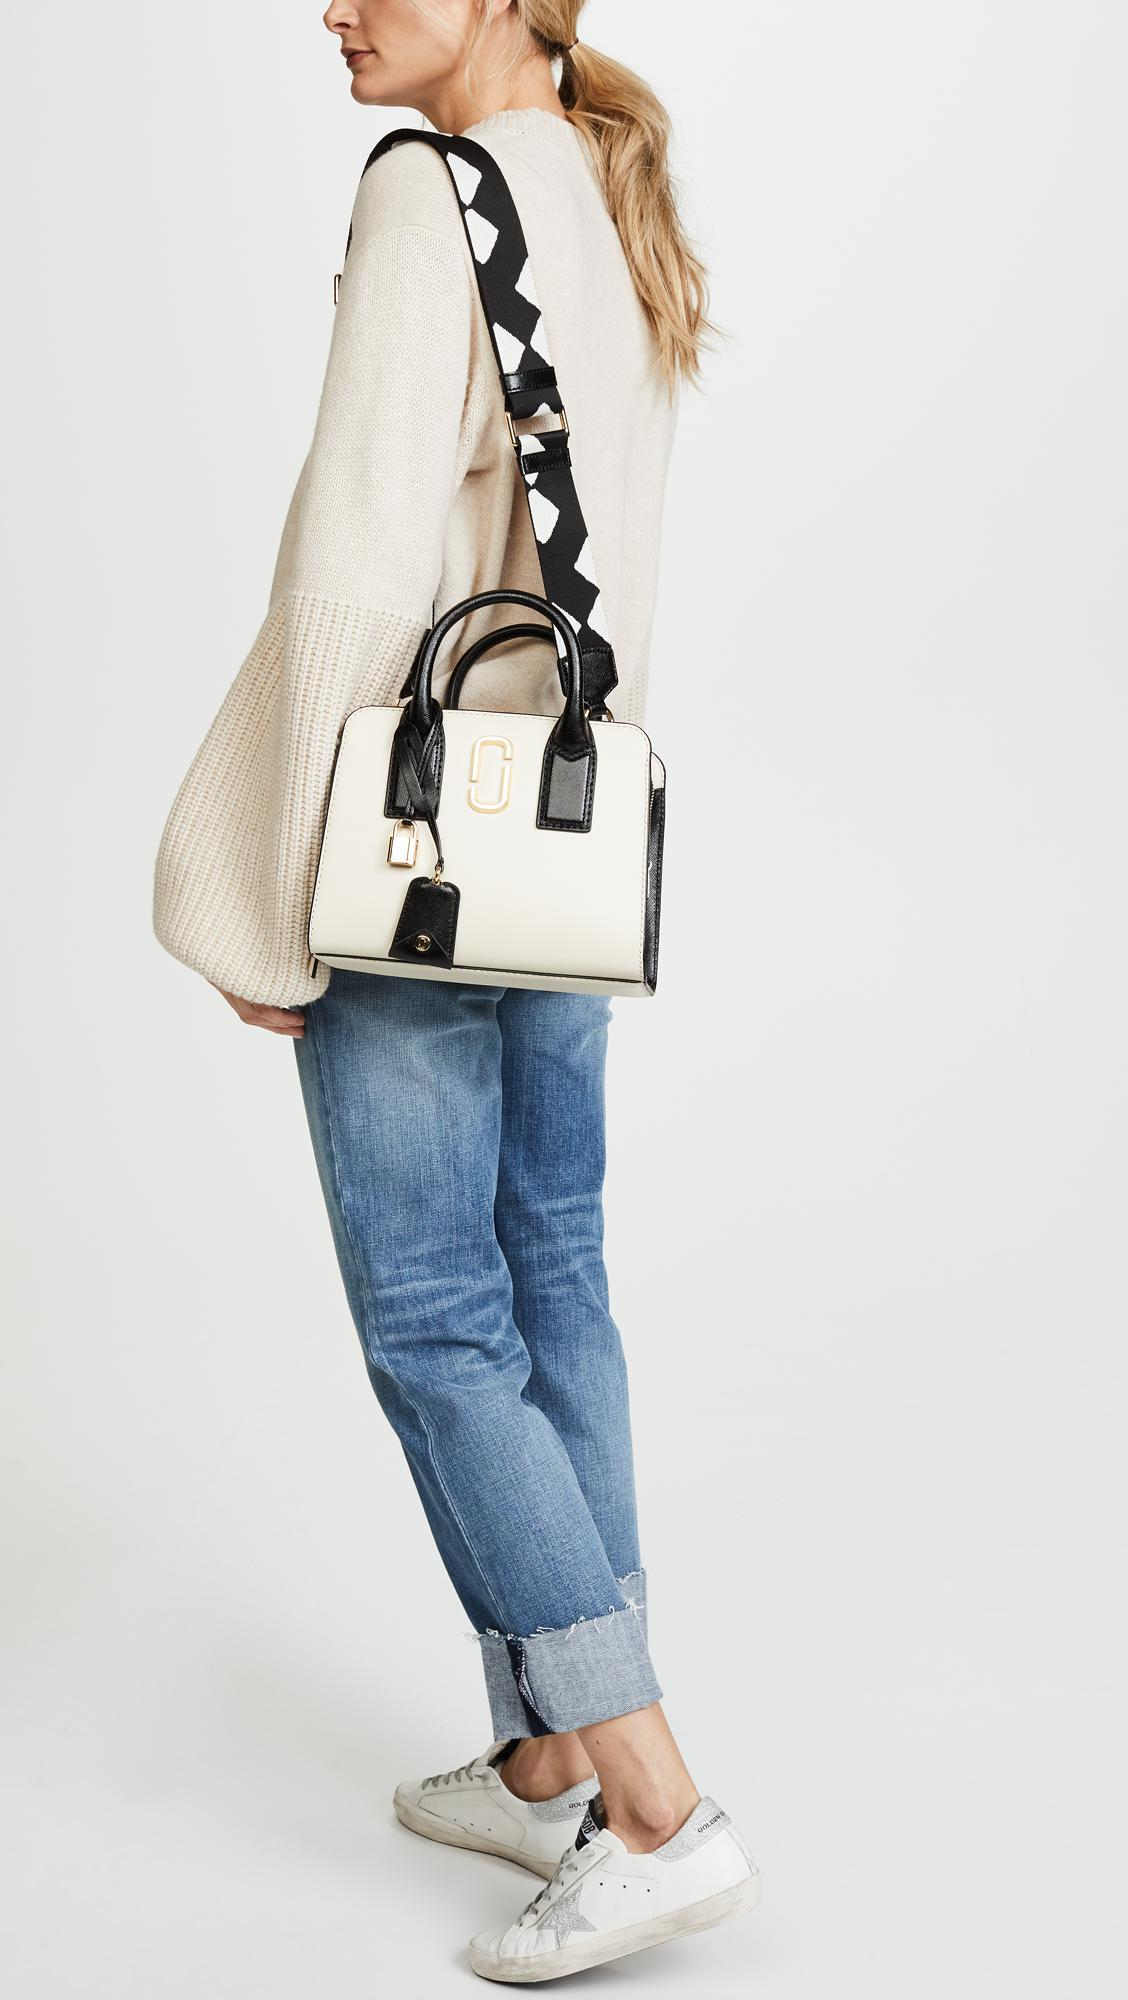 494e8fca64 Lyst - Marc Jacobs Little Big Shot Satchel in White